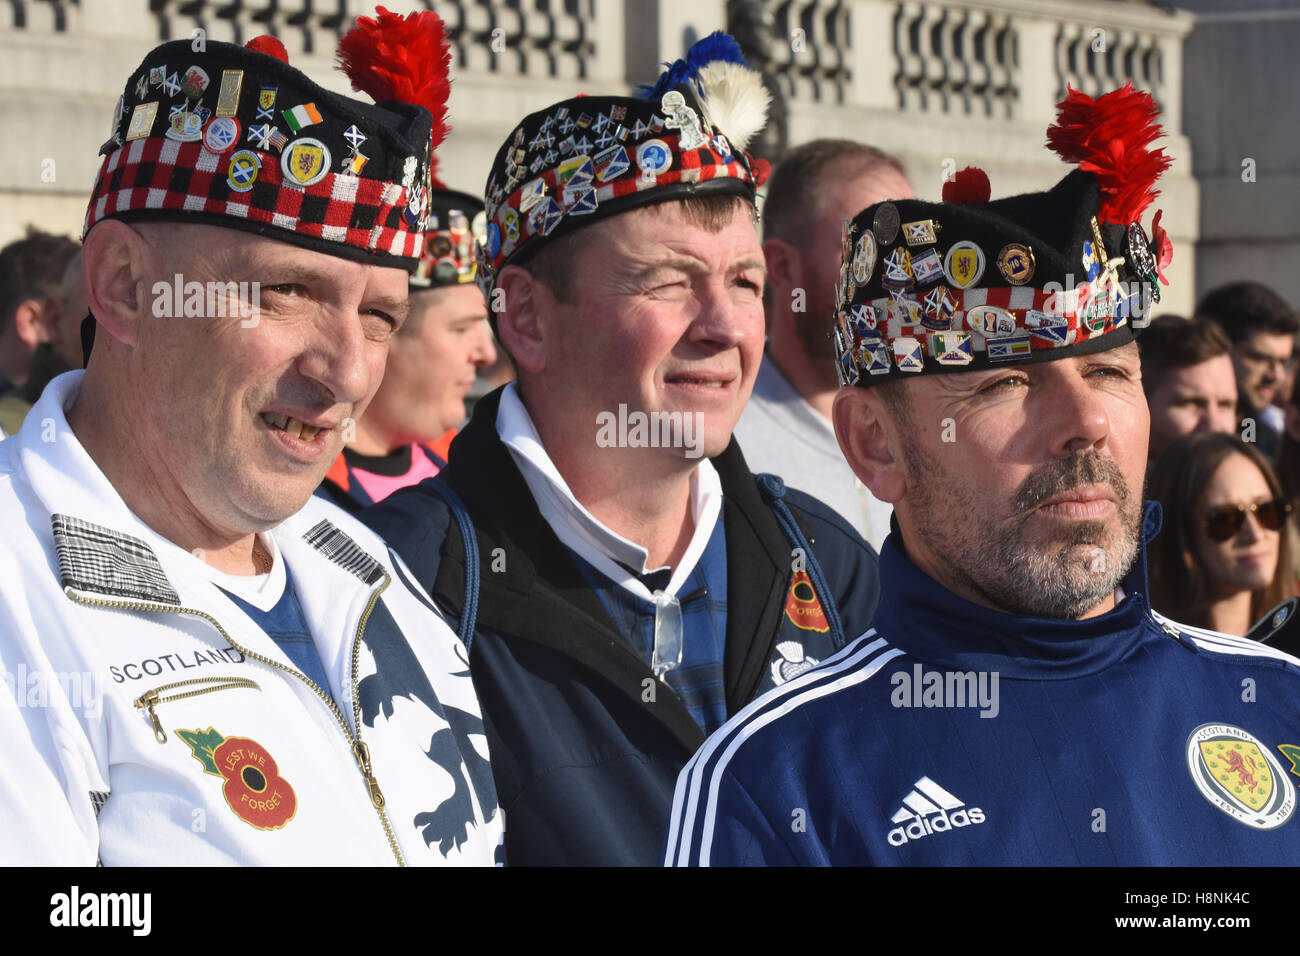 Scottish Football Fans,Armistice Day,The Royal British Legion,Silence in the Square,Trafalgar Square,London.UK - Stock Image